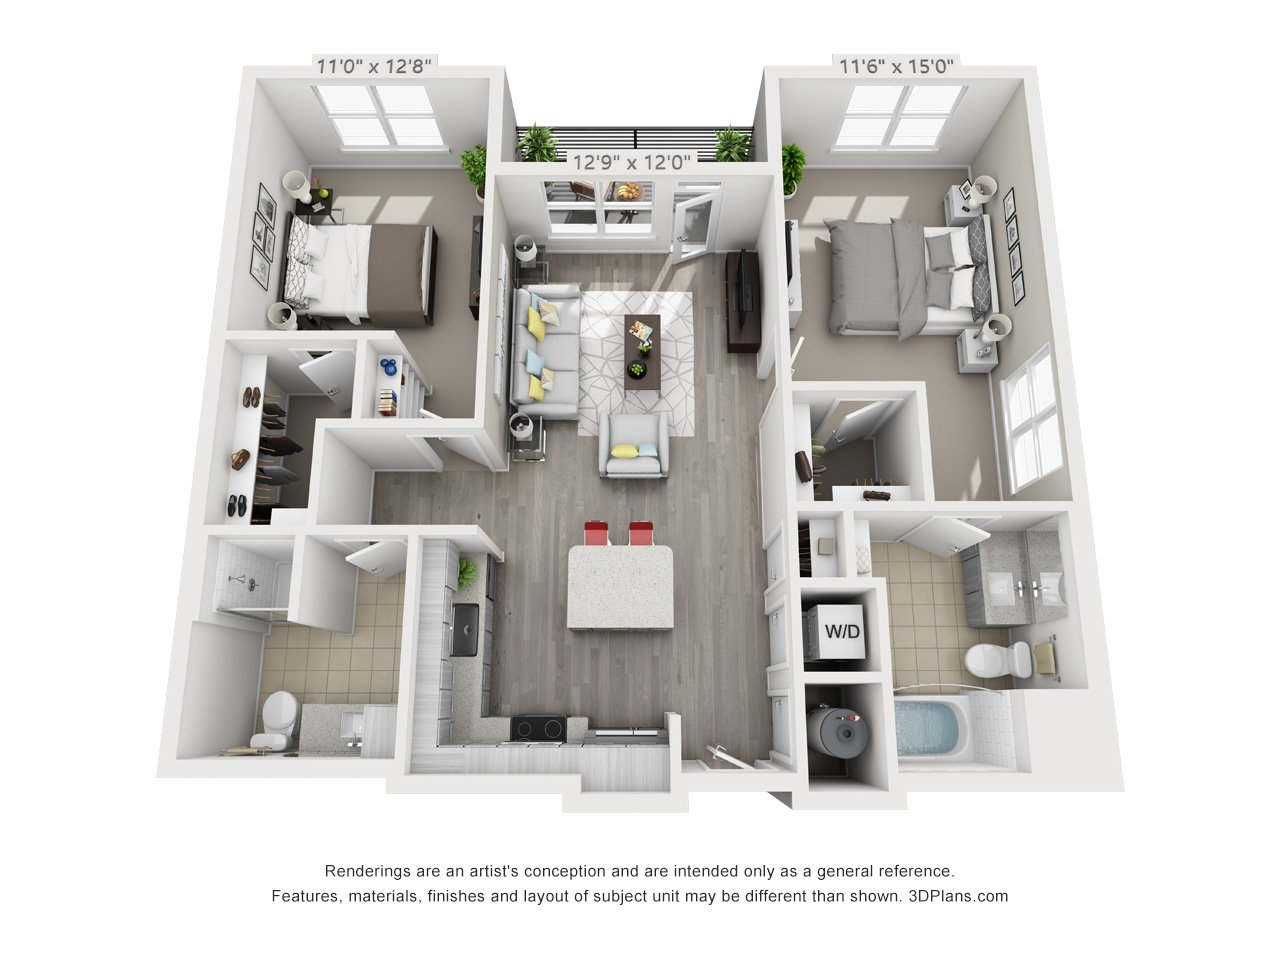 Luxury one and two bedroom apartments in wauwatosa wi for 2 bedroom apartments wauwatosa wi